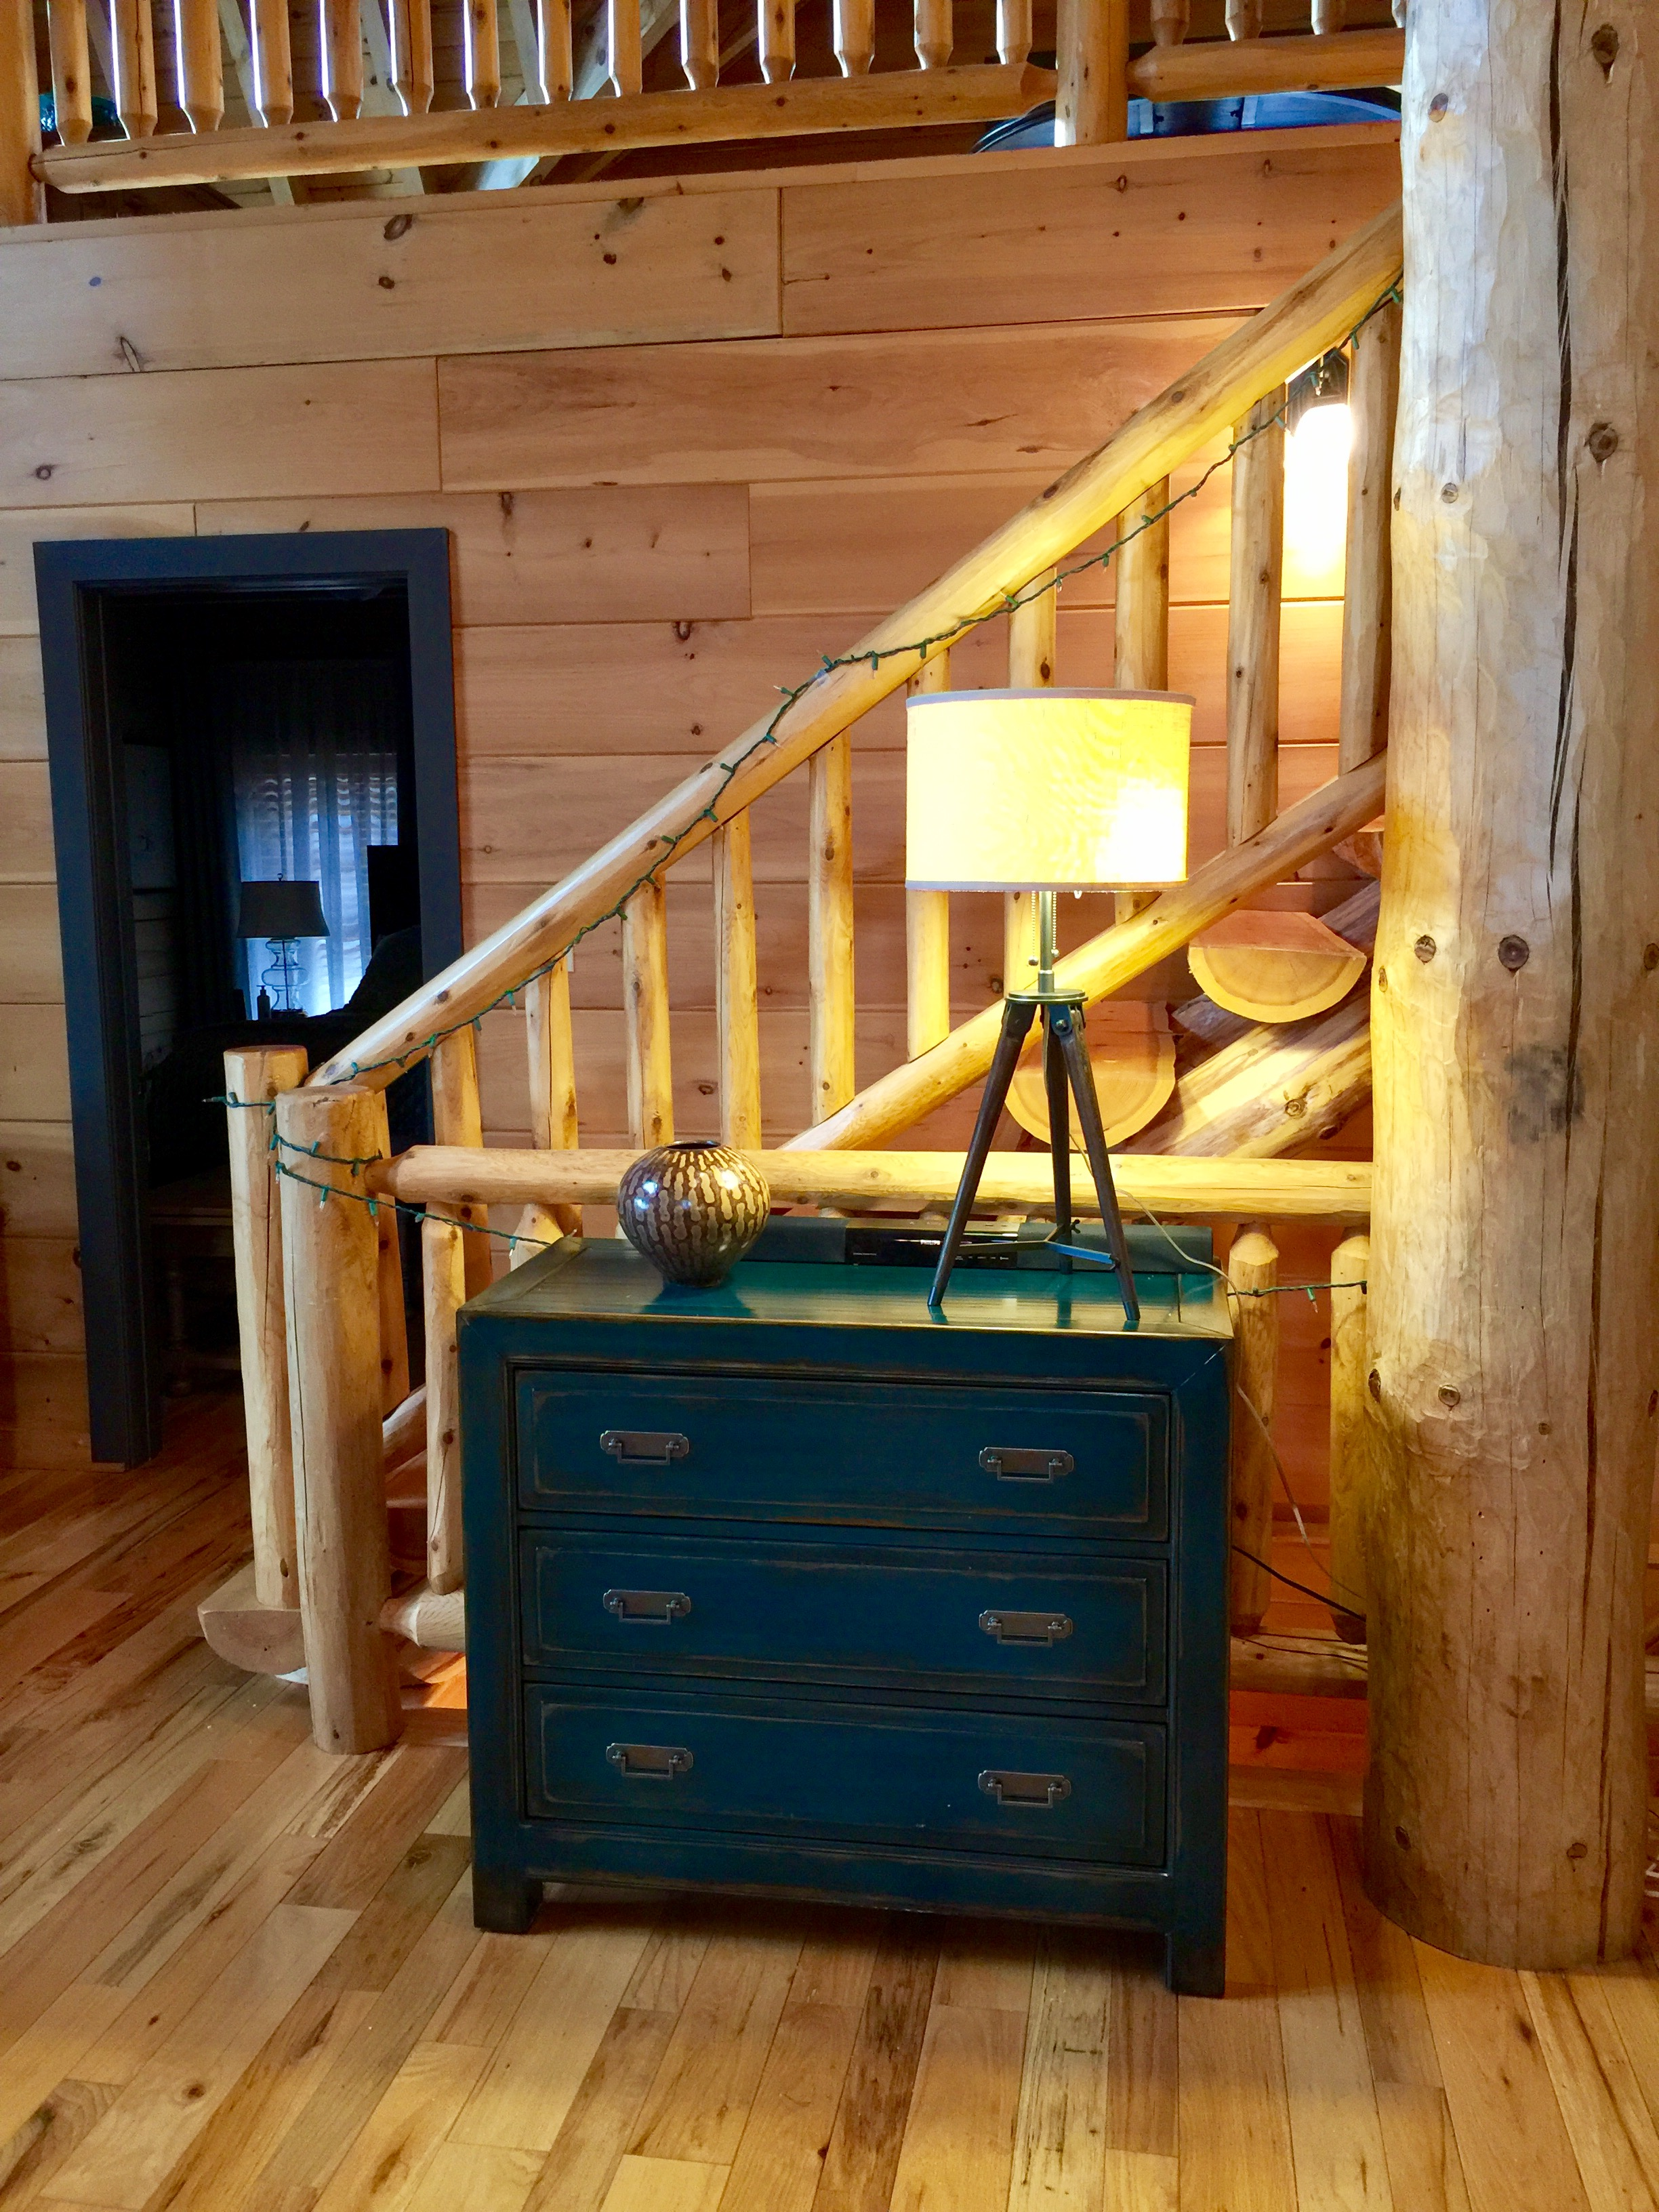 Beautiful teal chest with distressed finish adds a pop of color.